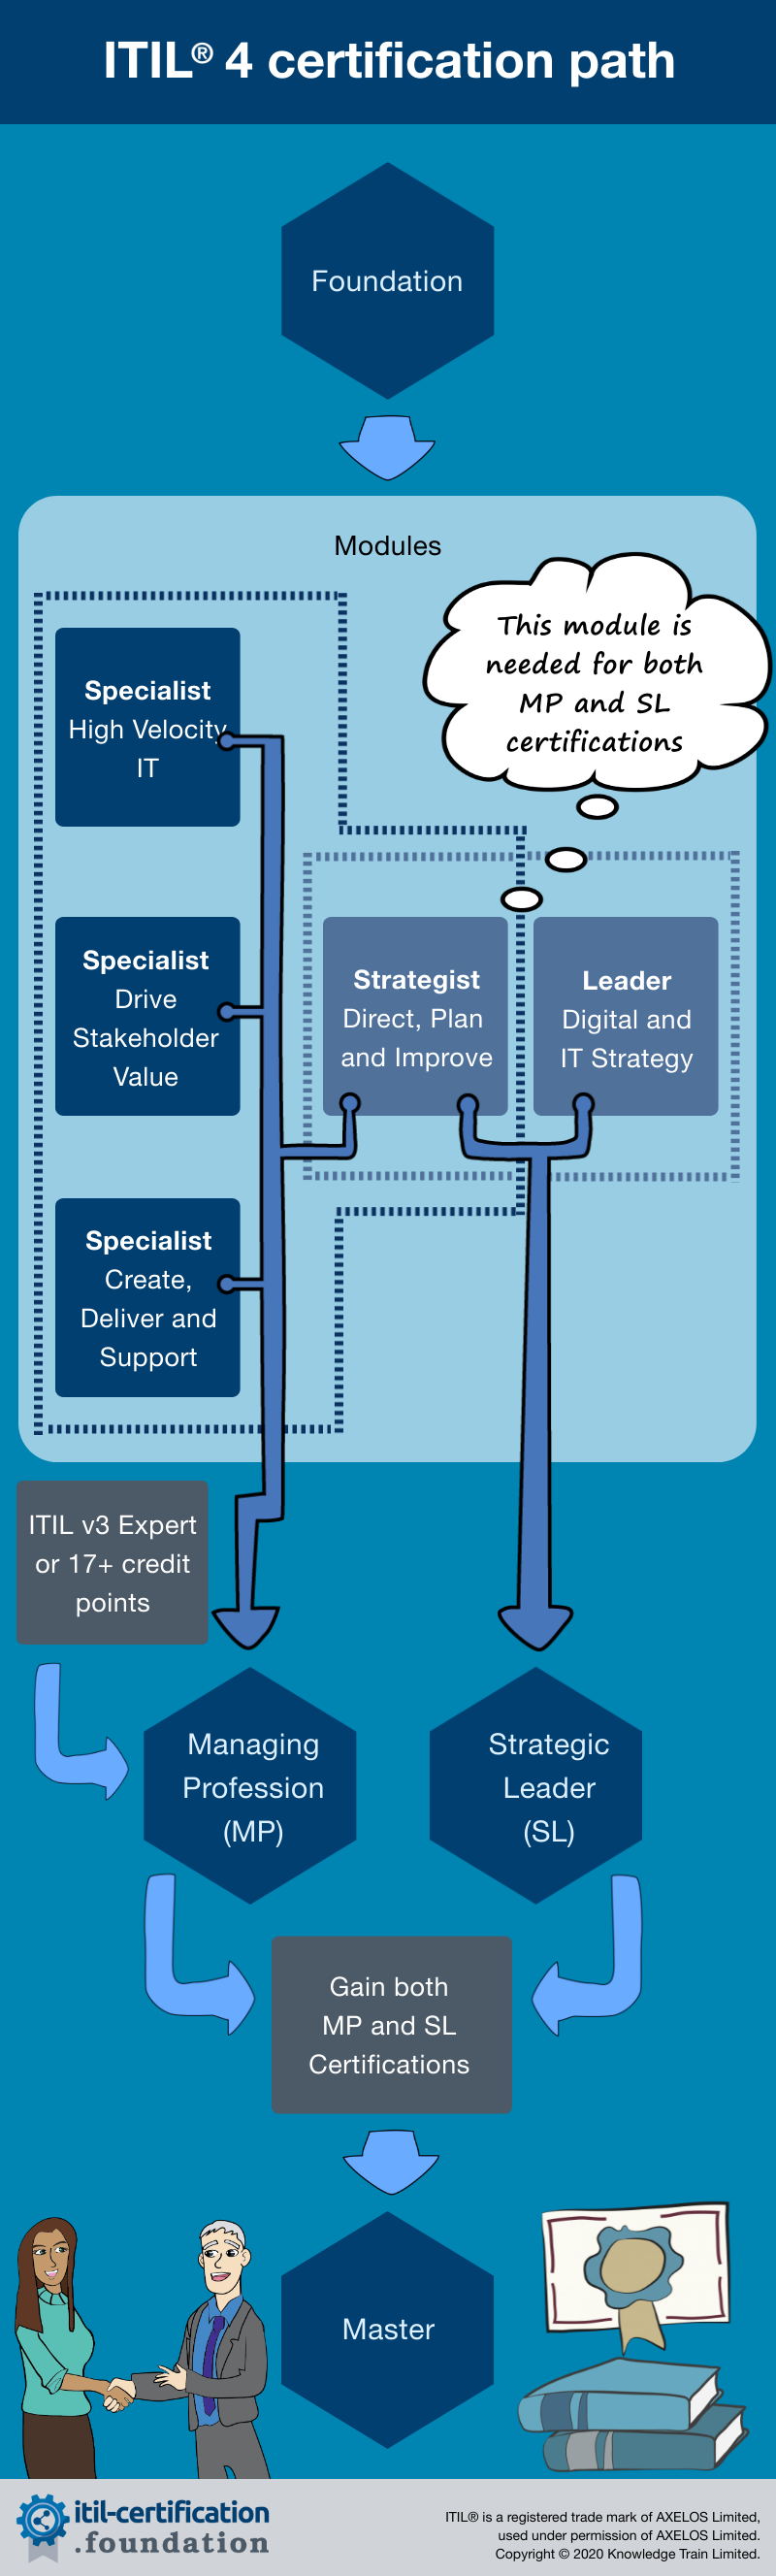 ITIL v3 certification path